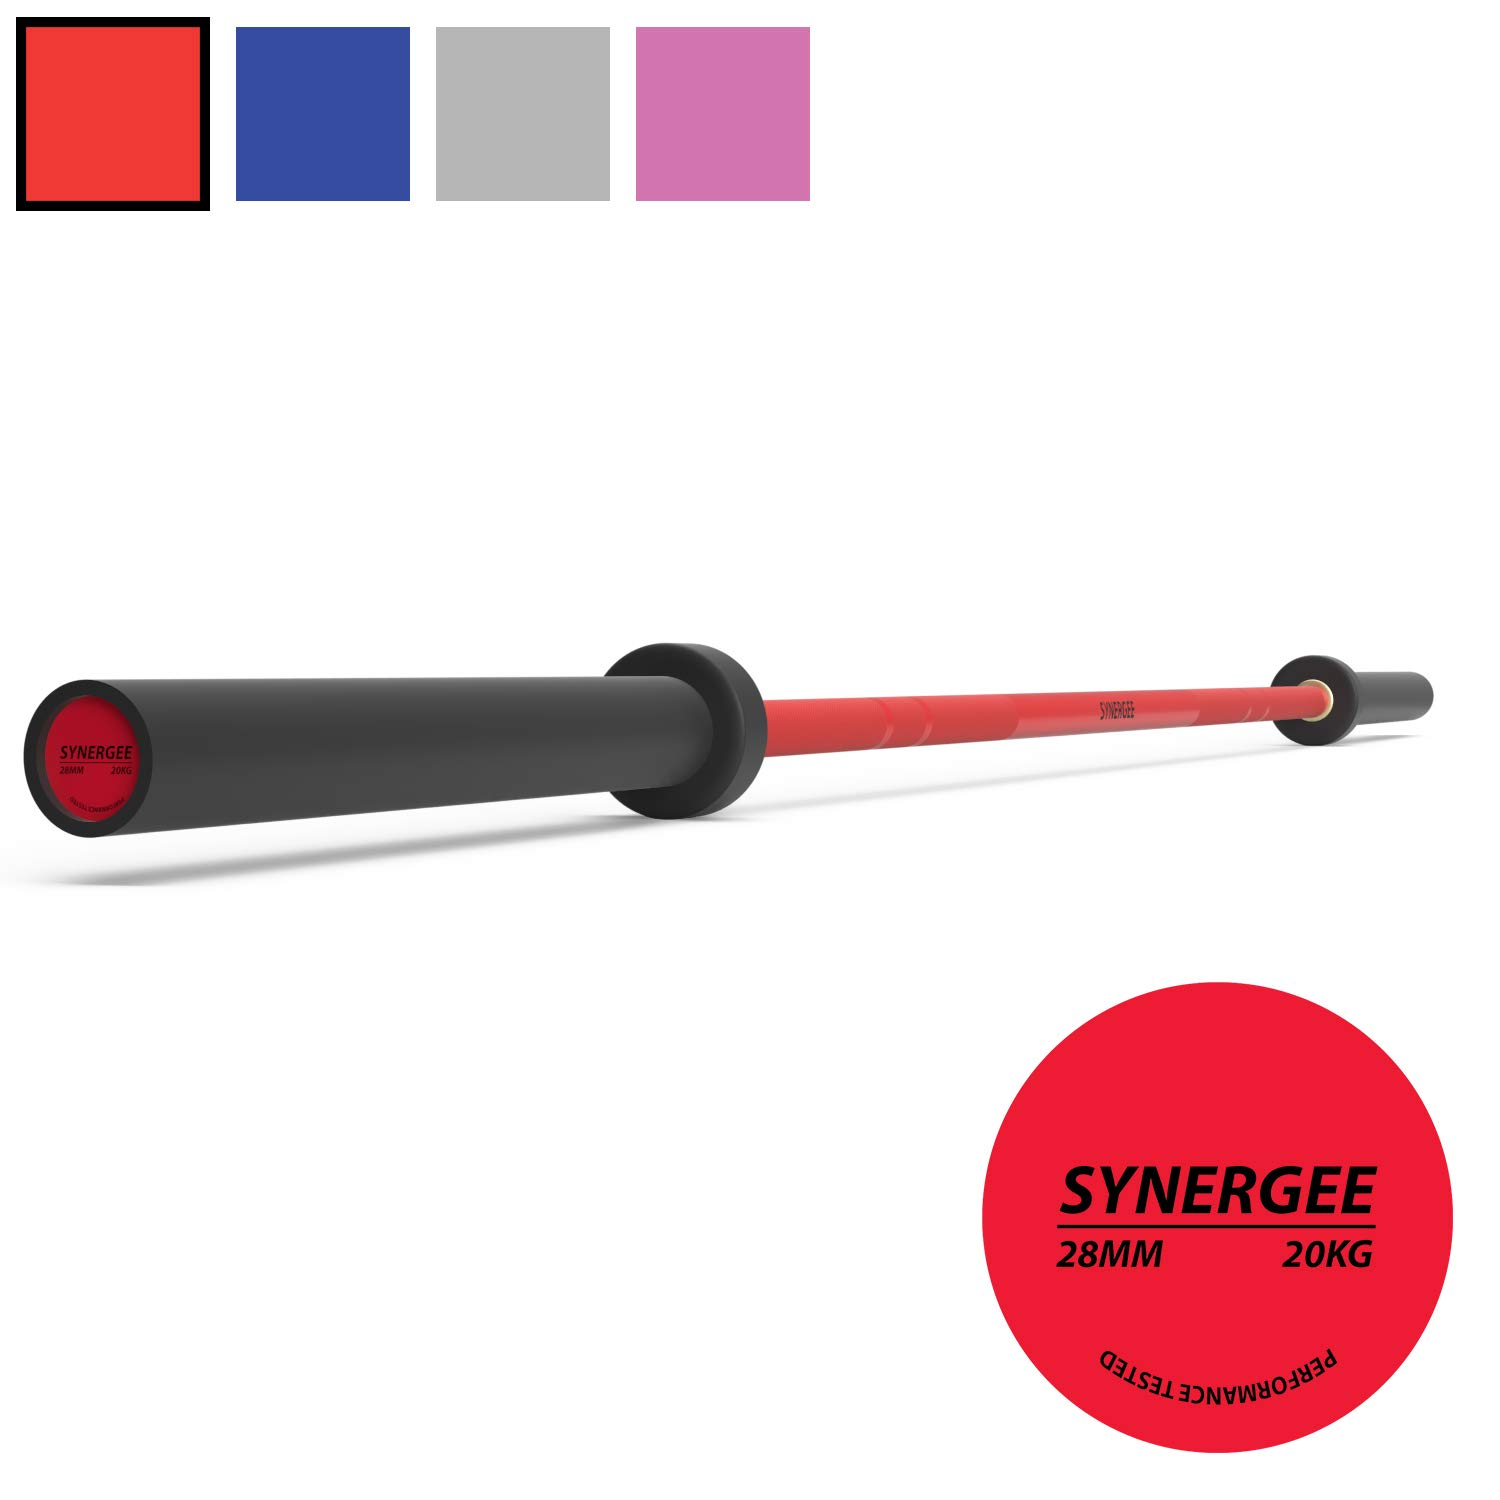 Synergee Games 20kg Colored Men's Red Cerakote Barbell. Rated 1500lbs for Weightlifting, Powerlifting and Crossfit